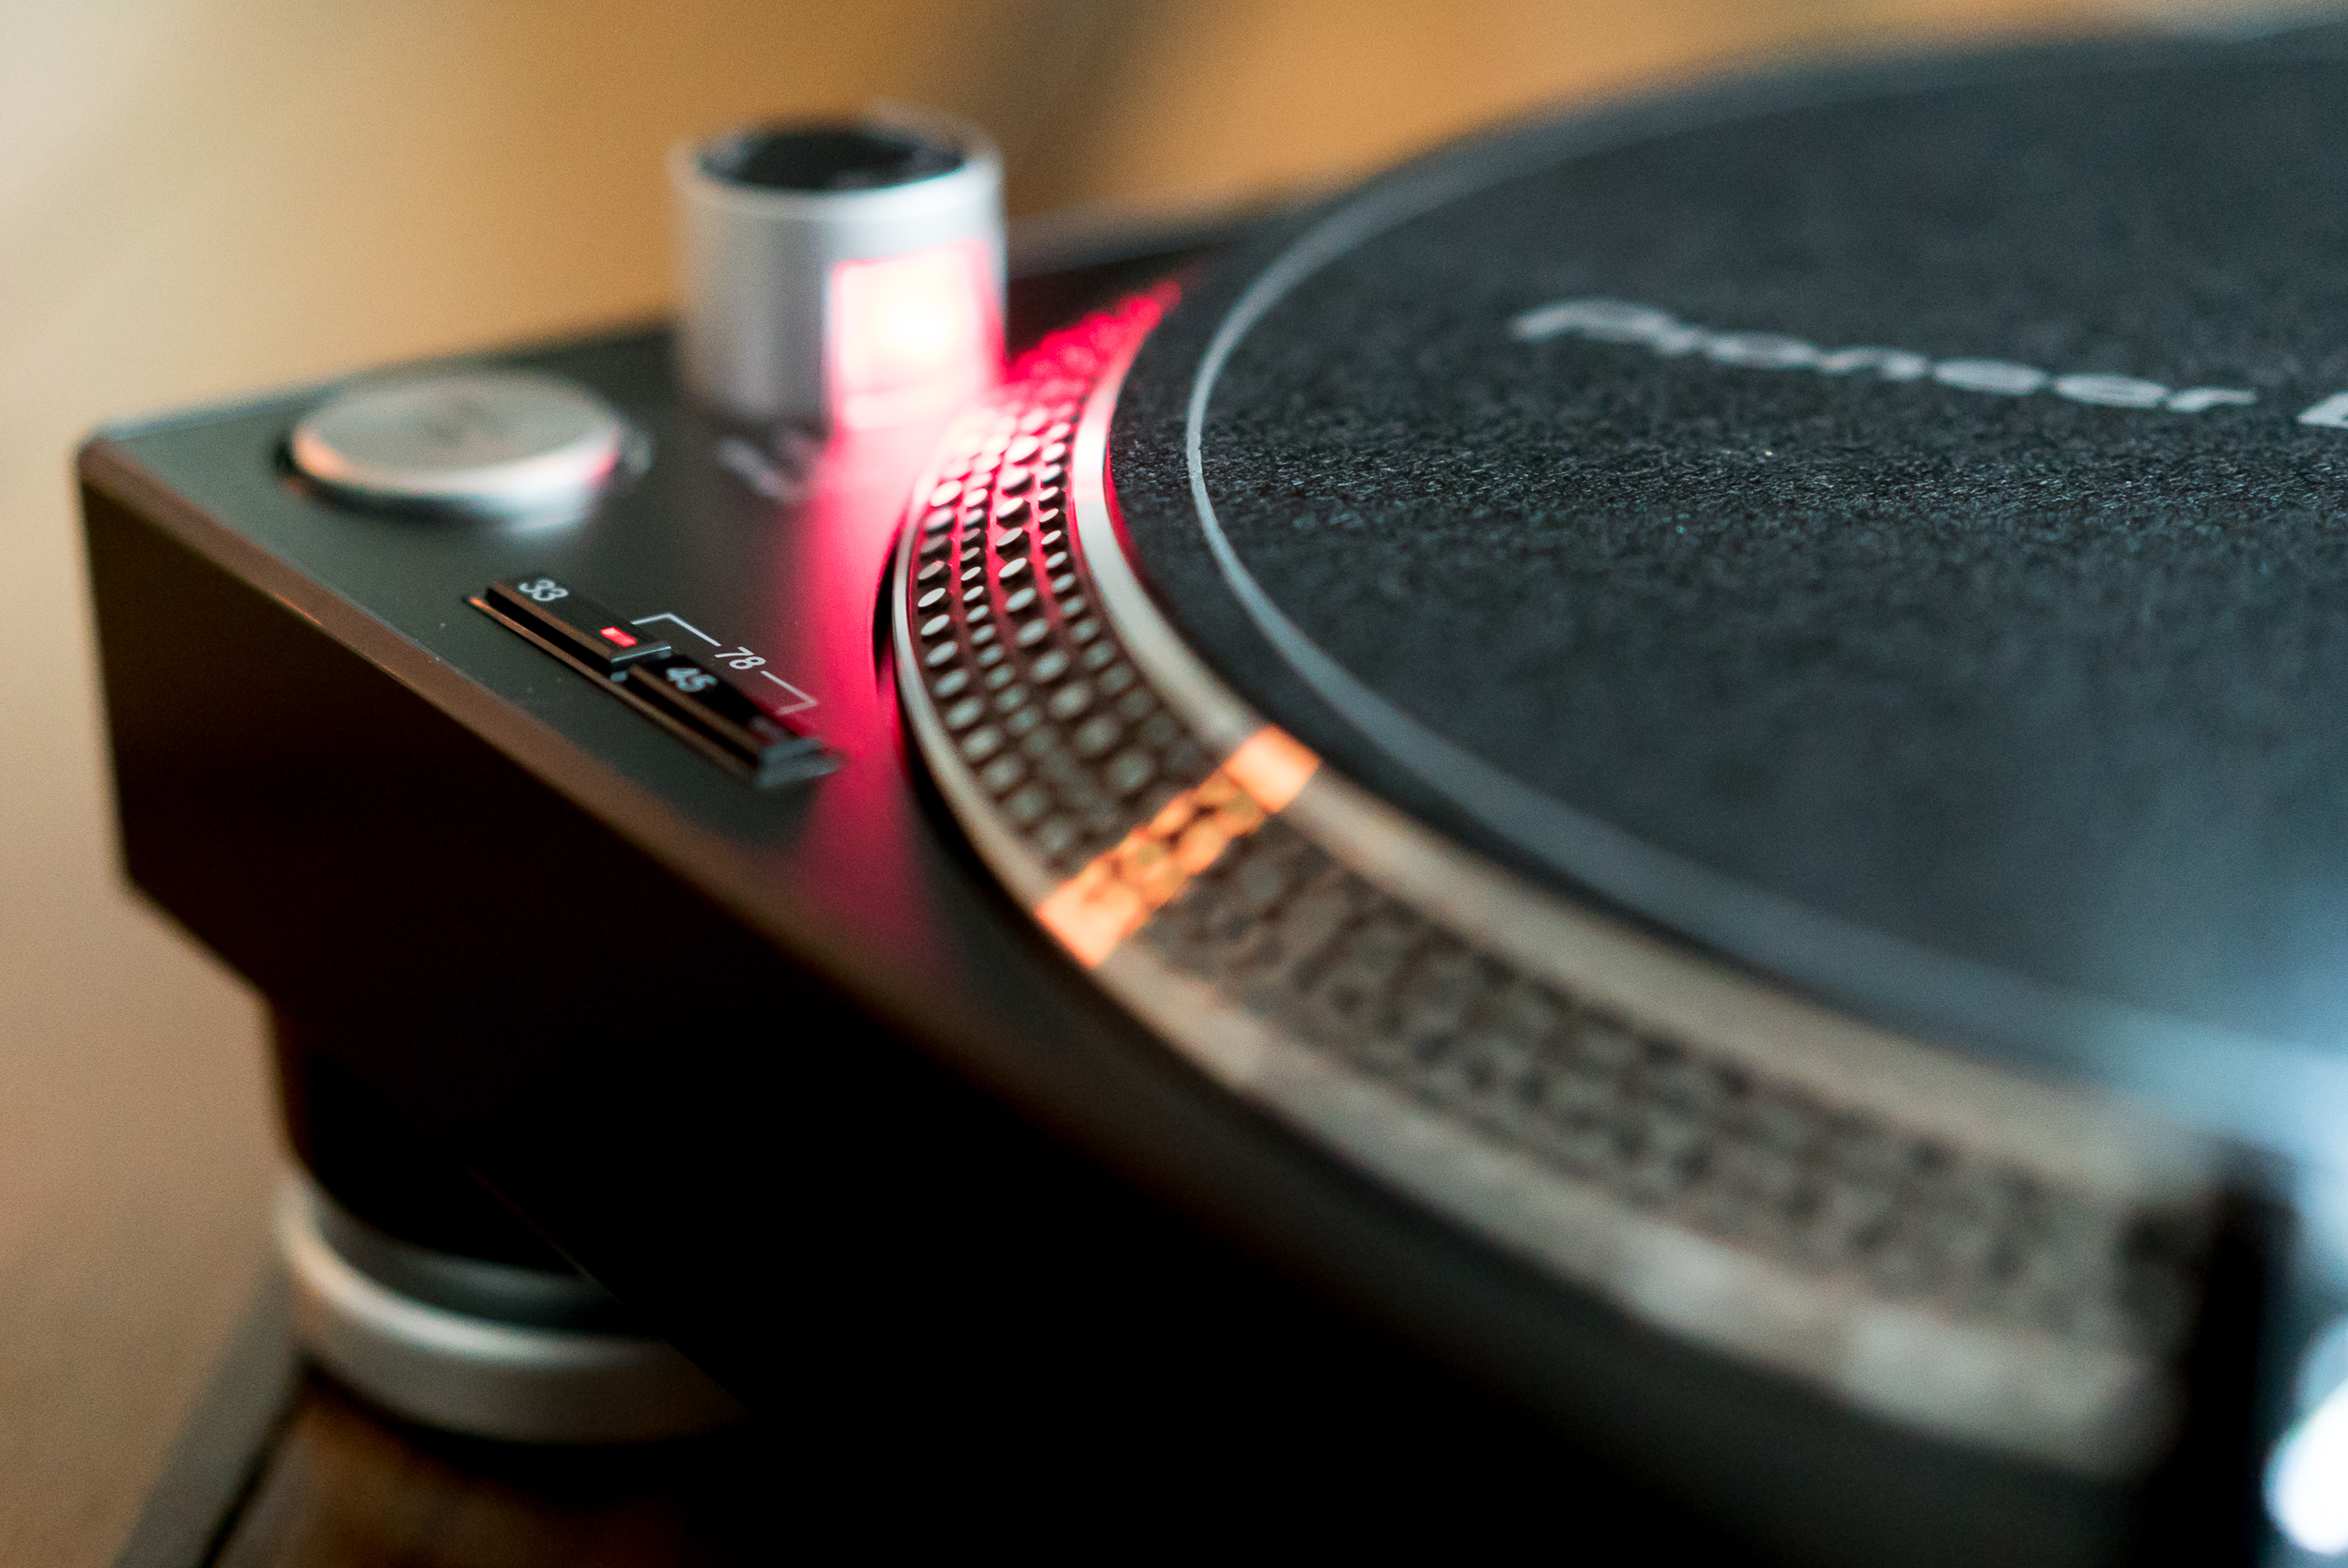 The PLX-500 is a great introduction to vinyl hi-fi and for DJs that need a Technics-style fix on the cheap.